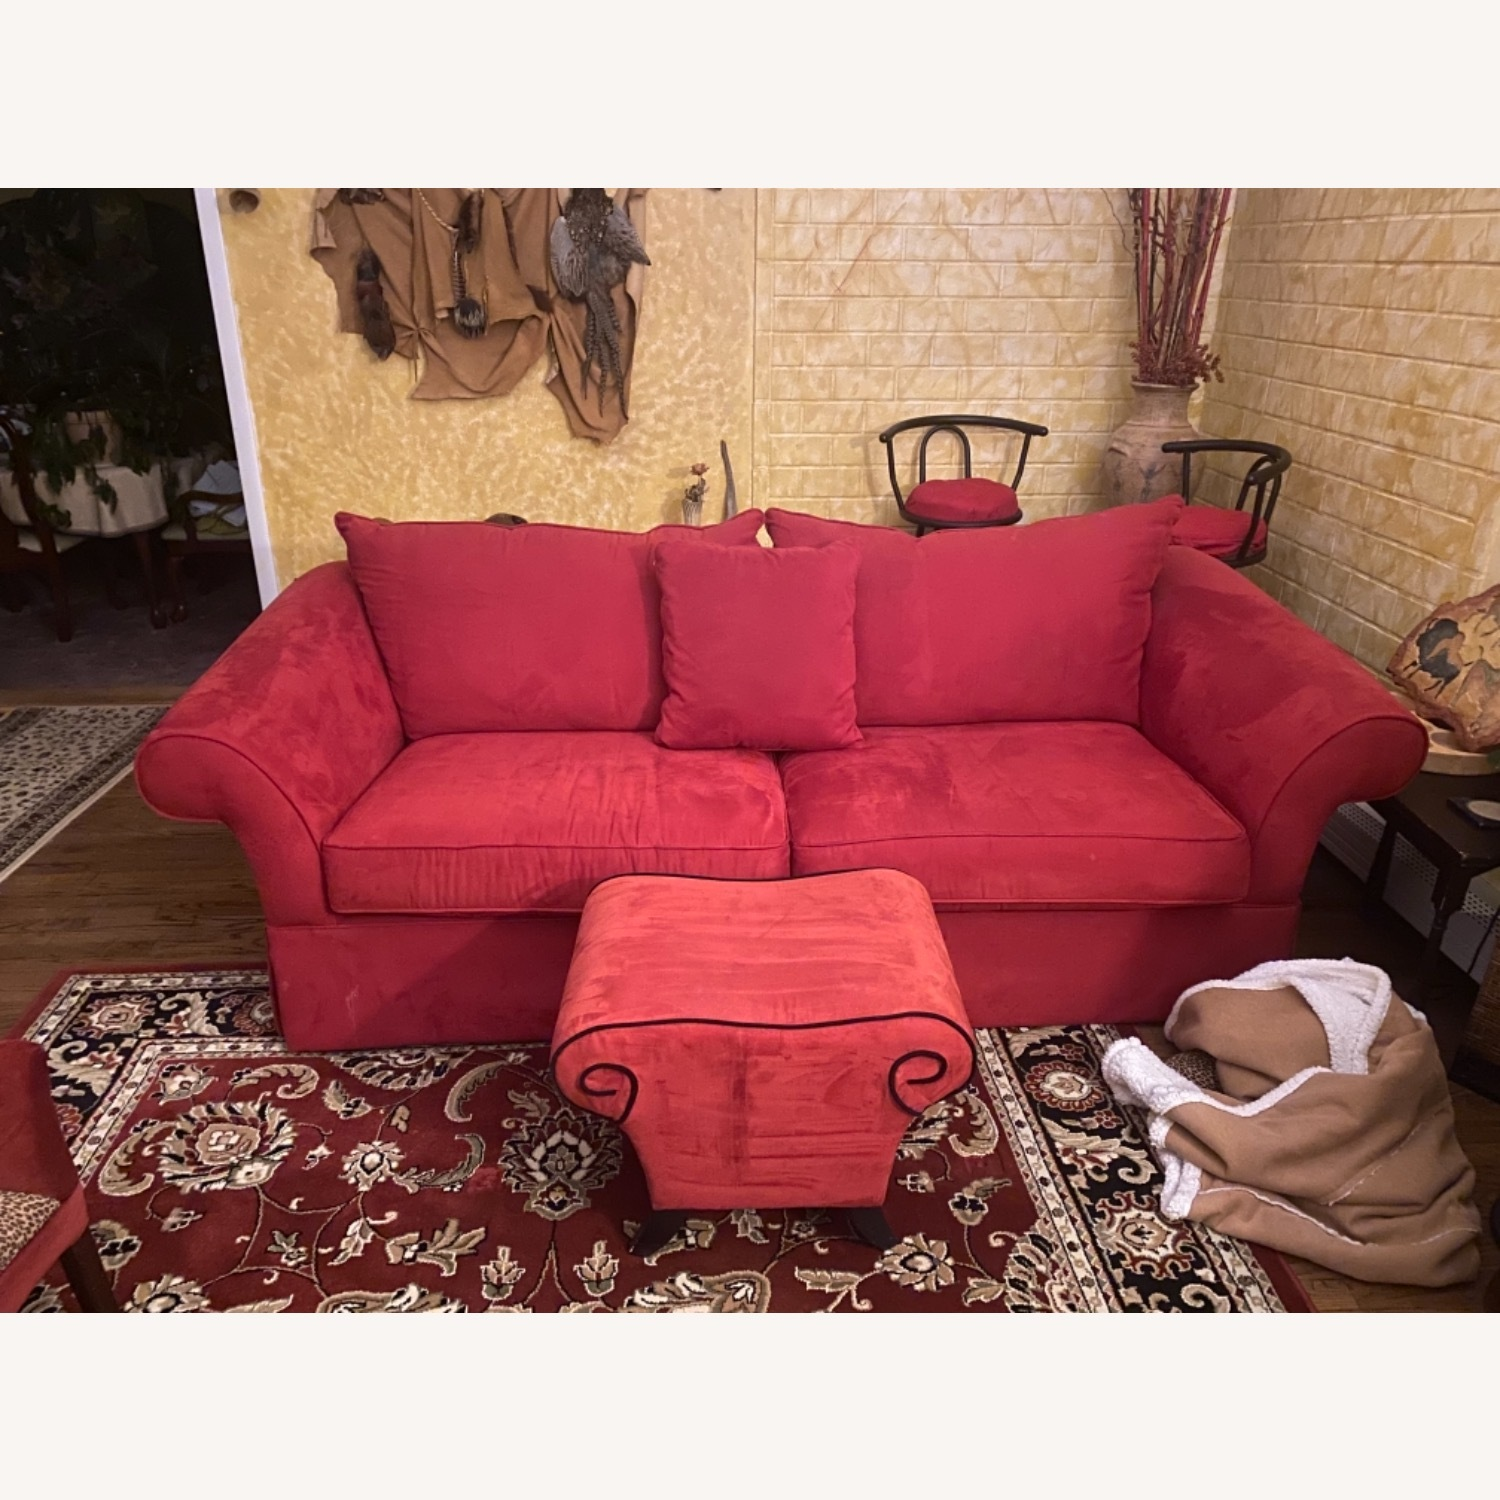 Raymour & Flanigan Red Suede Sofa with Pullout Bed - image-1